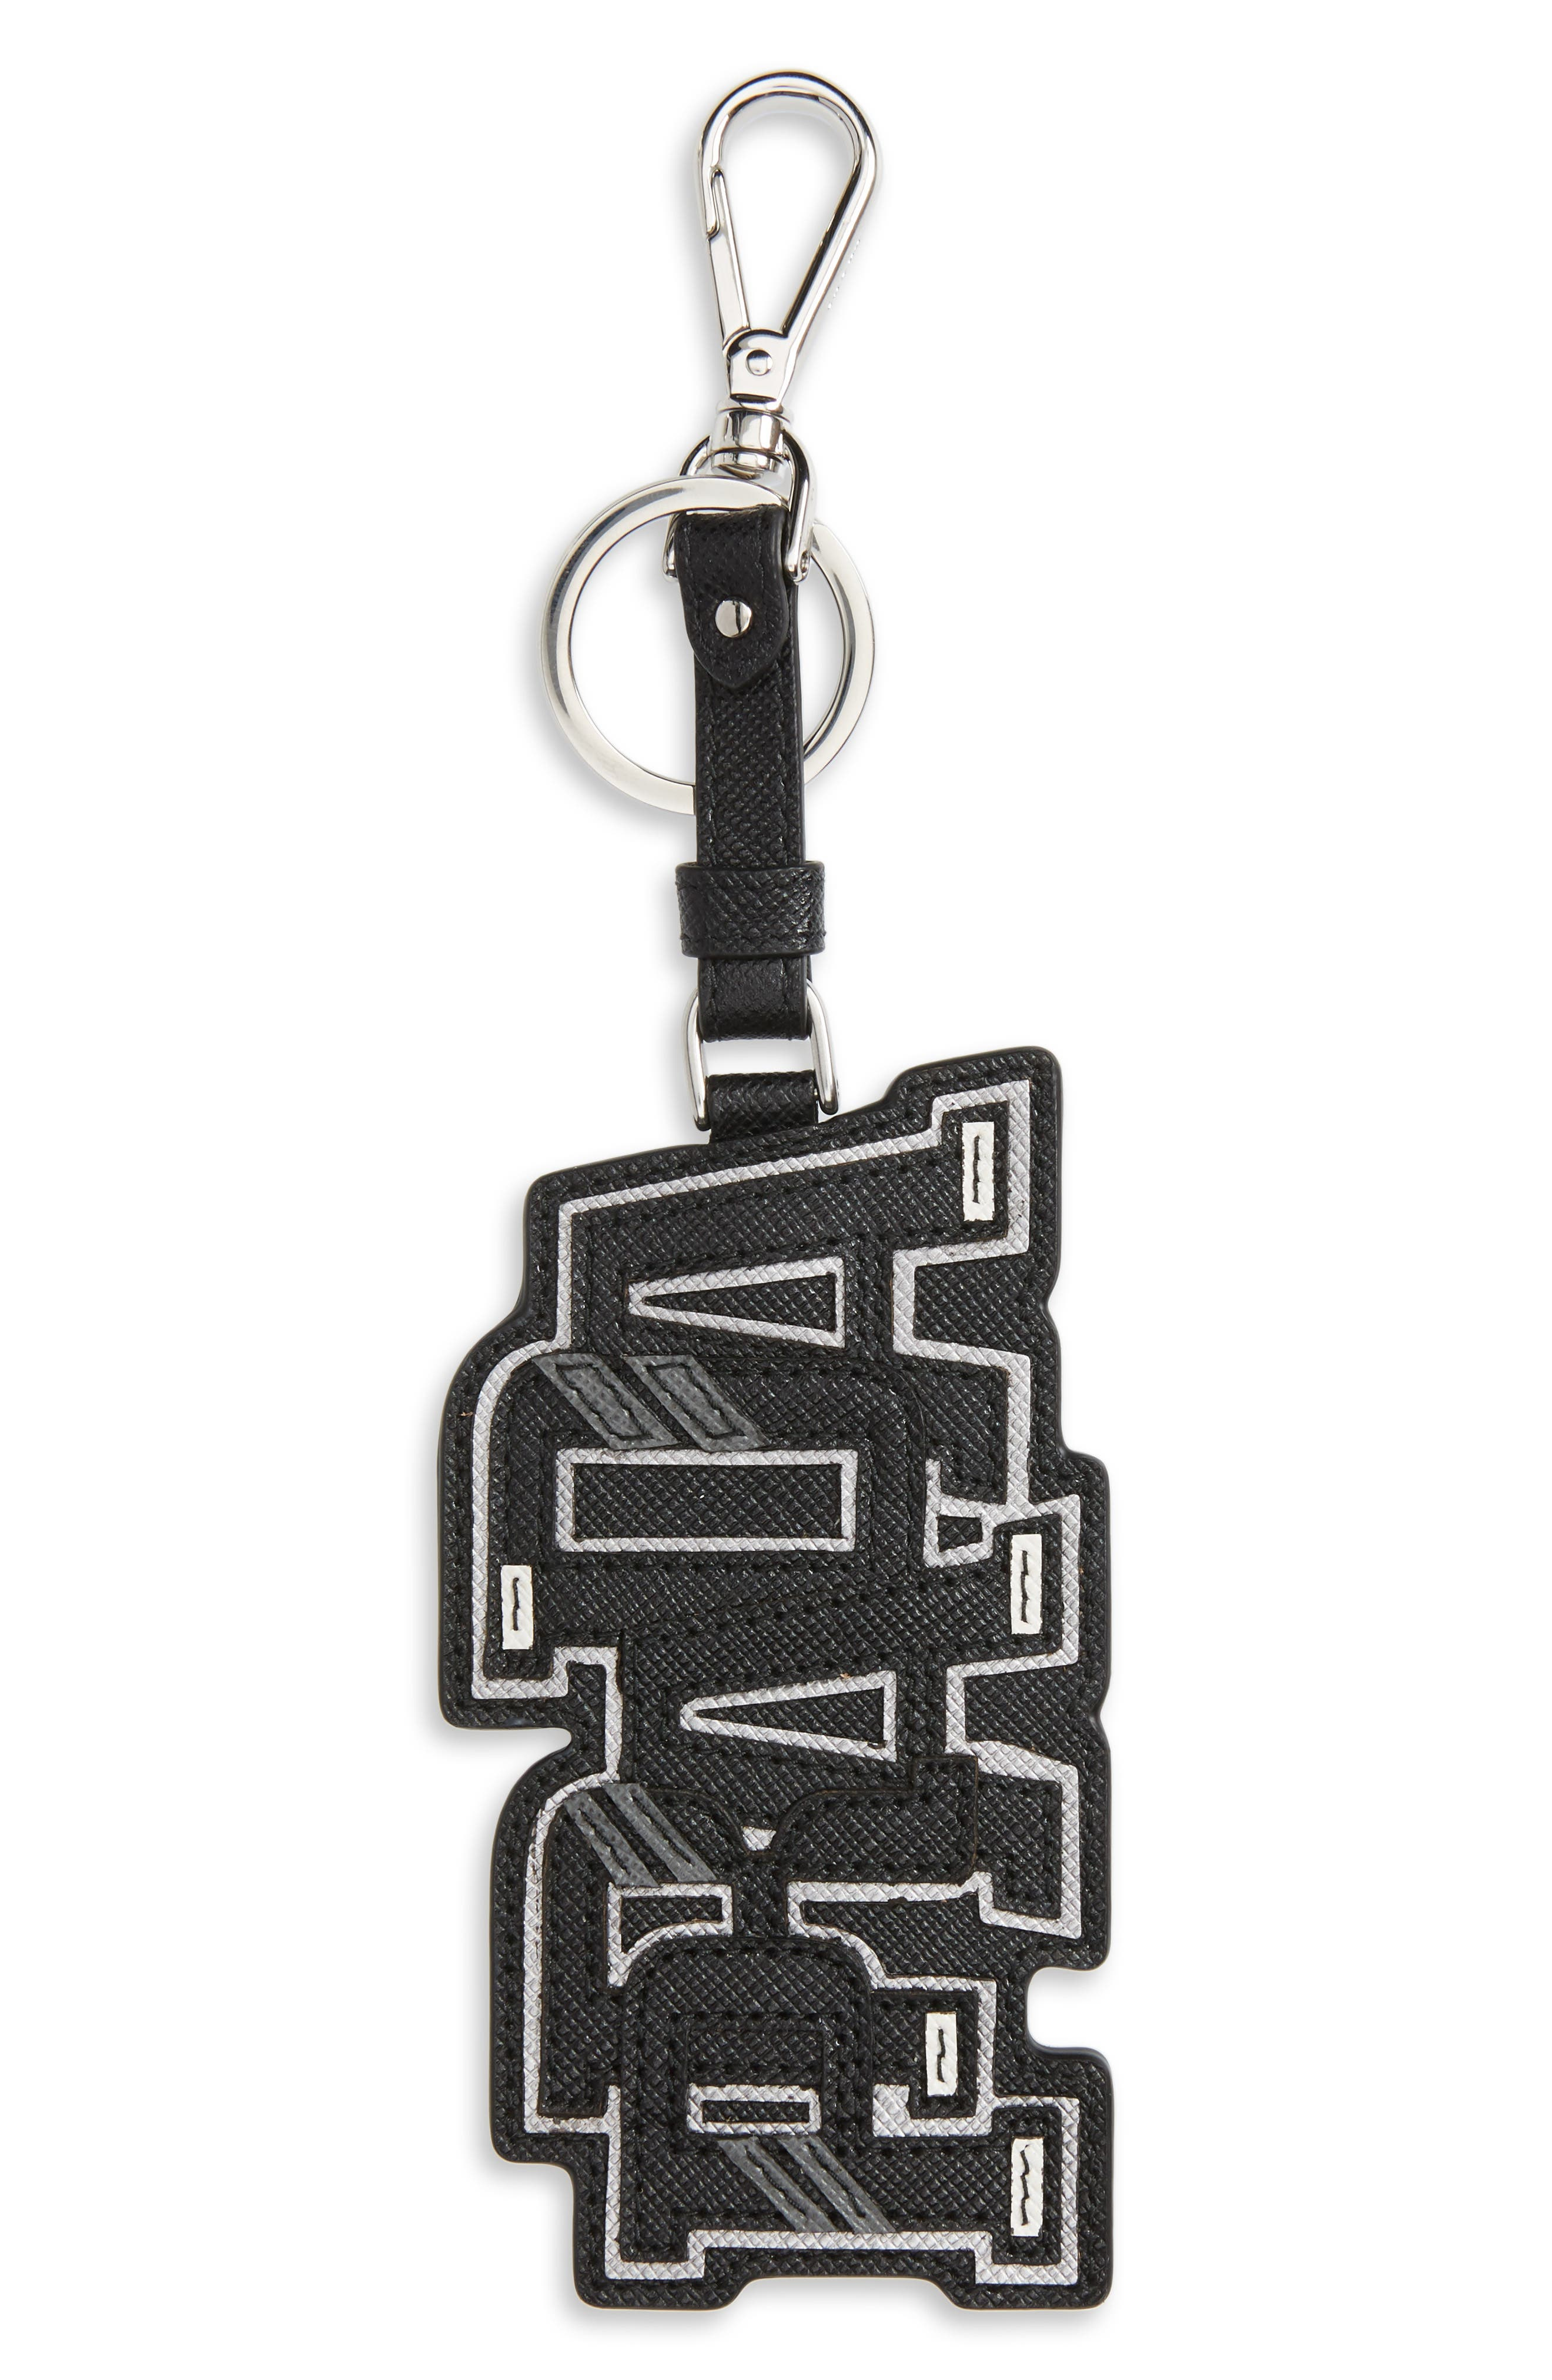 Saffiano Leather Character Key Chain,                             Main thumbnail 1, color,                             001